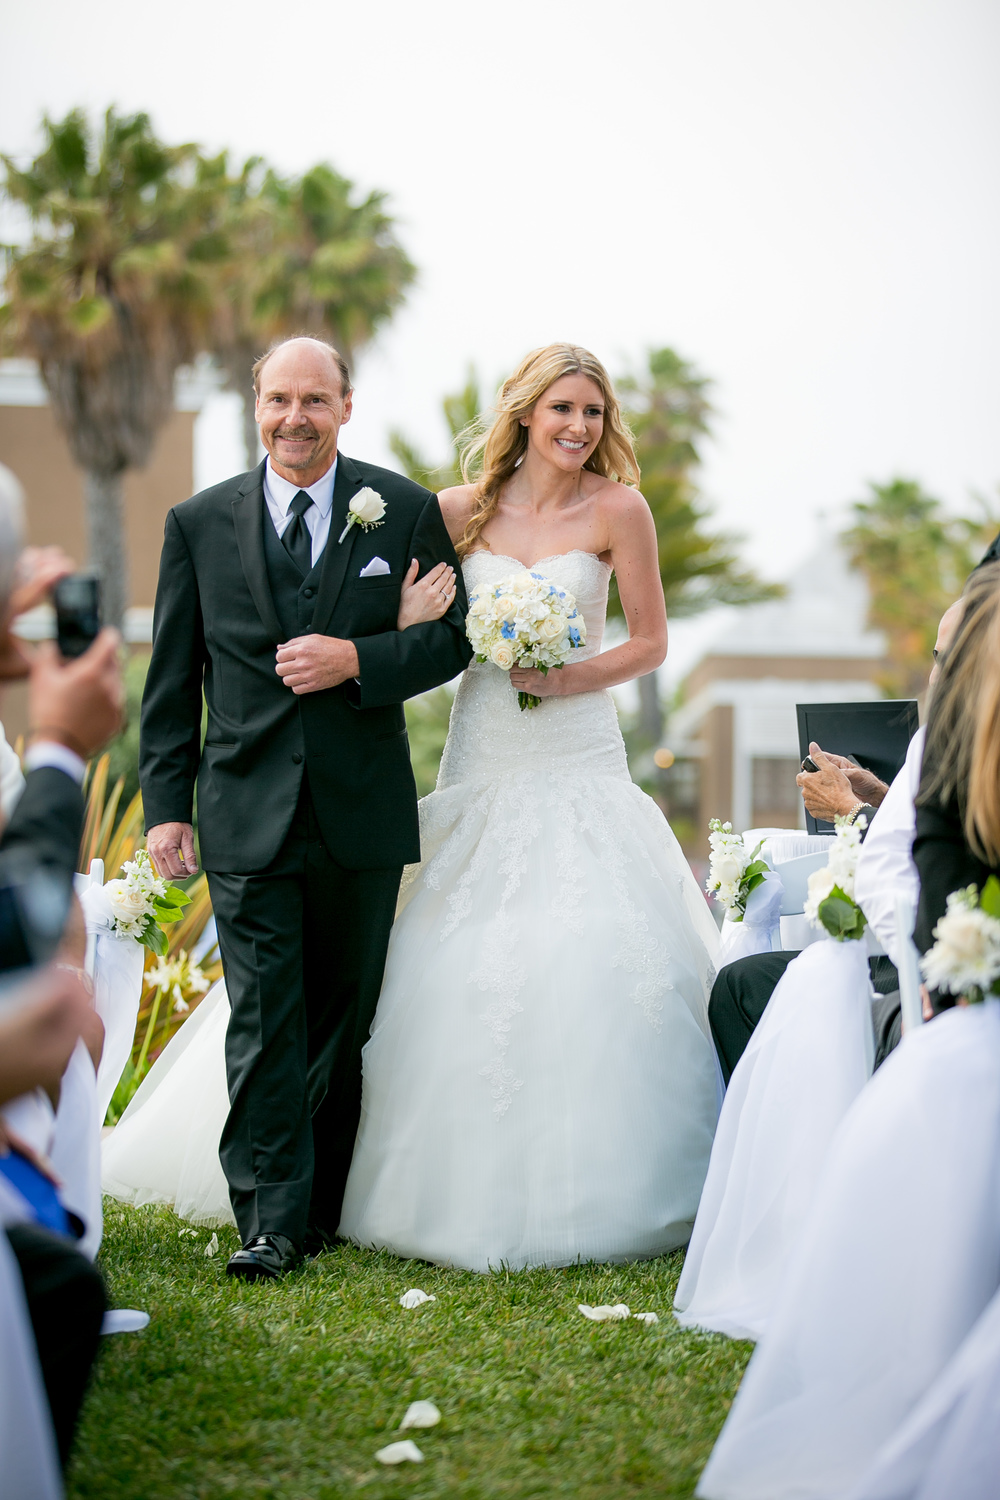 Walk Me Down the Aisle // The Overwhelmed Bride Wedding Blog + Southern California Wedding Planner